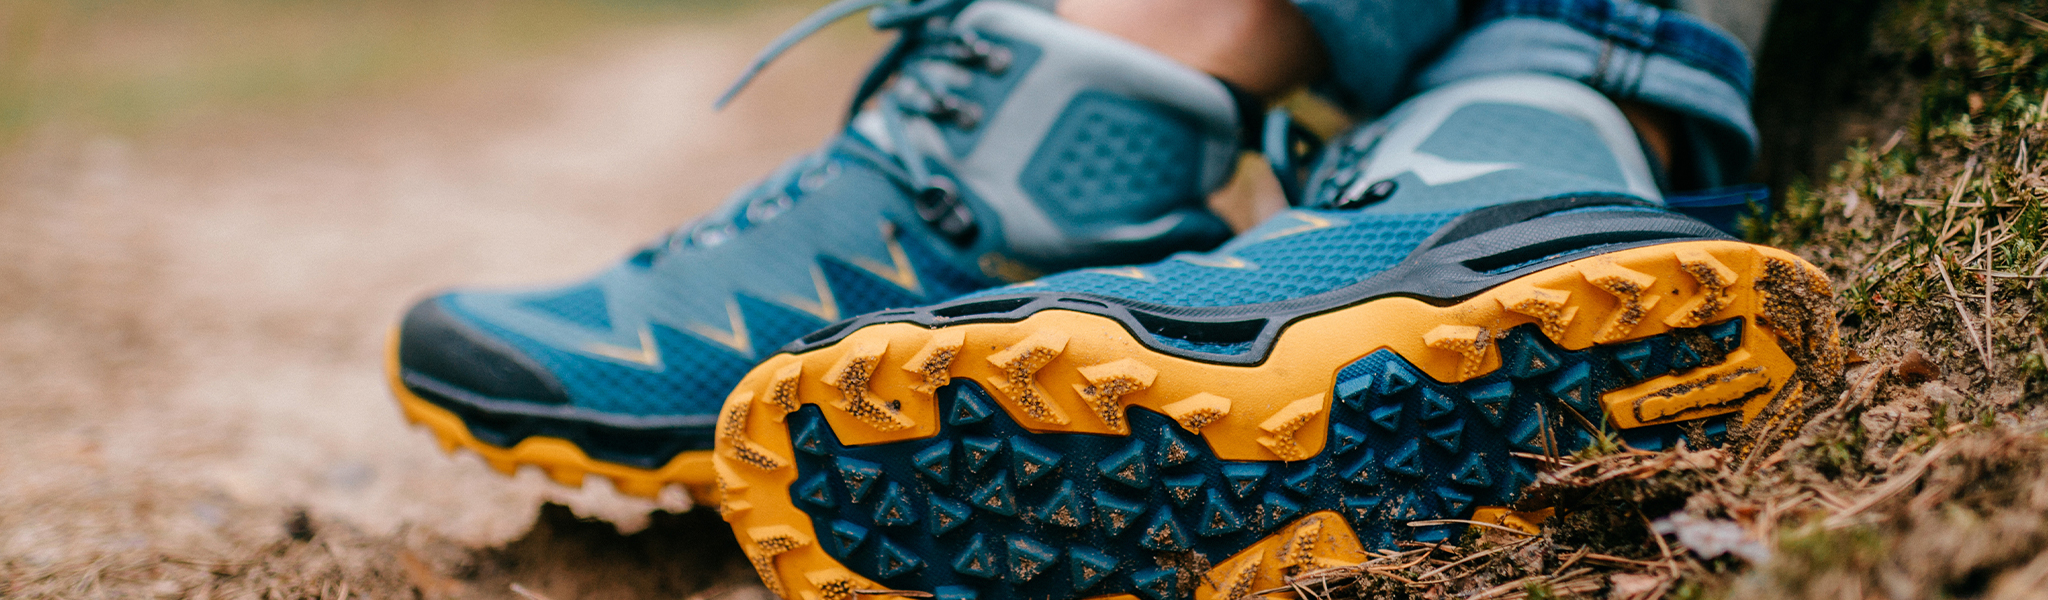 Image of pair of hiking shoes